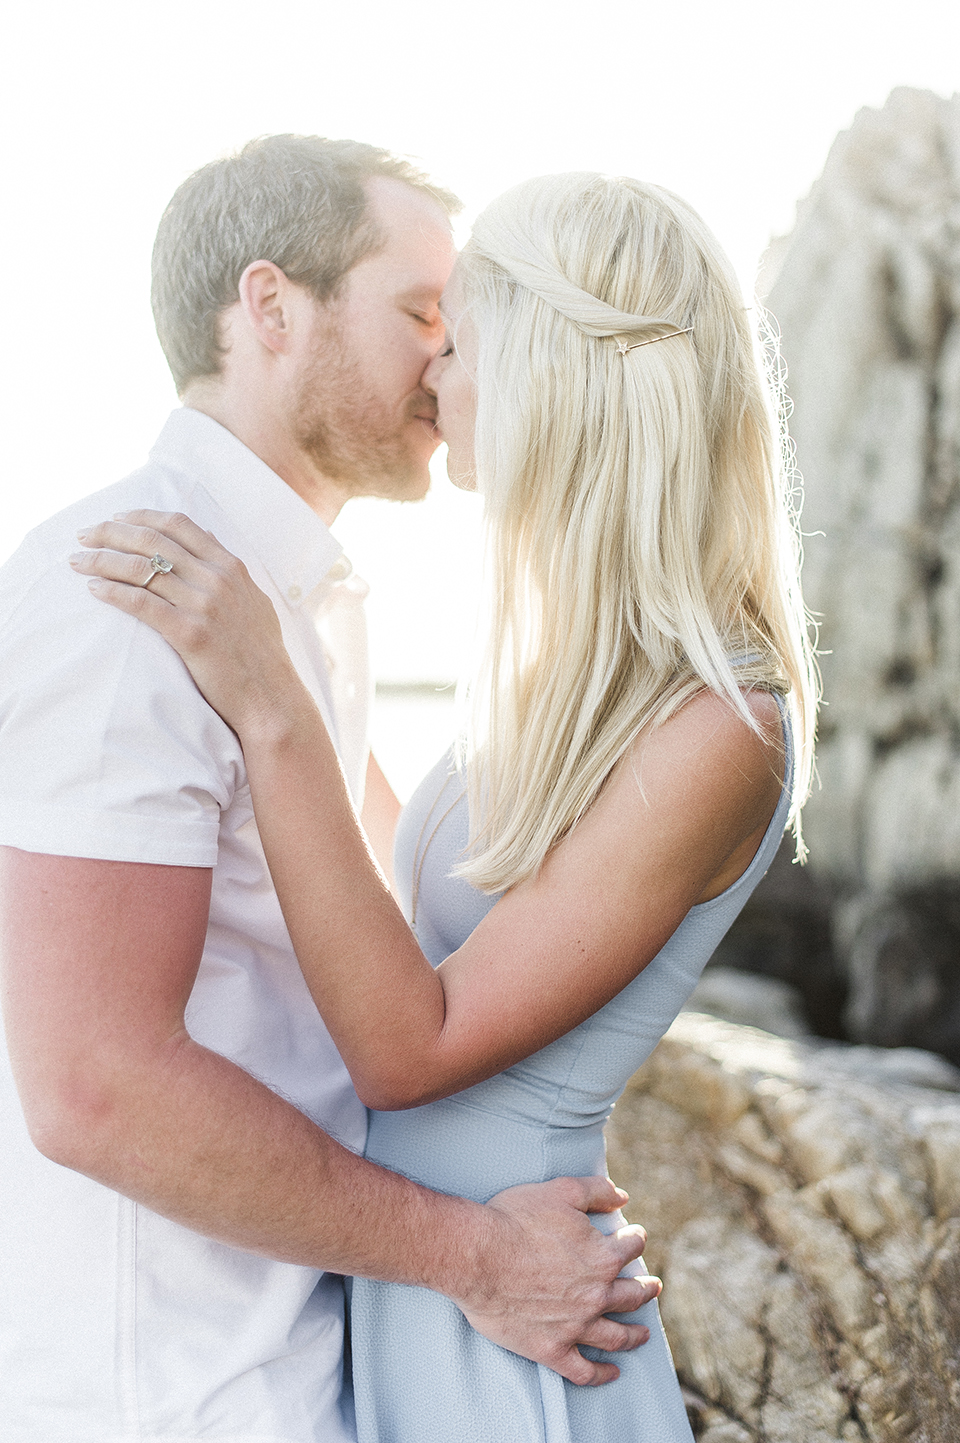 RyanParker_WeddingPhotographer_FineArt_CapeTown_EngagementSession_Hermanus_M&S_DSC_2489.jpg